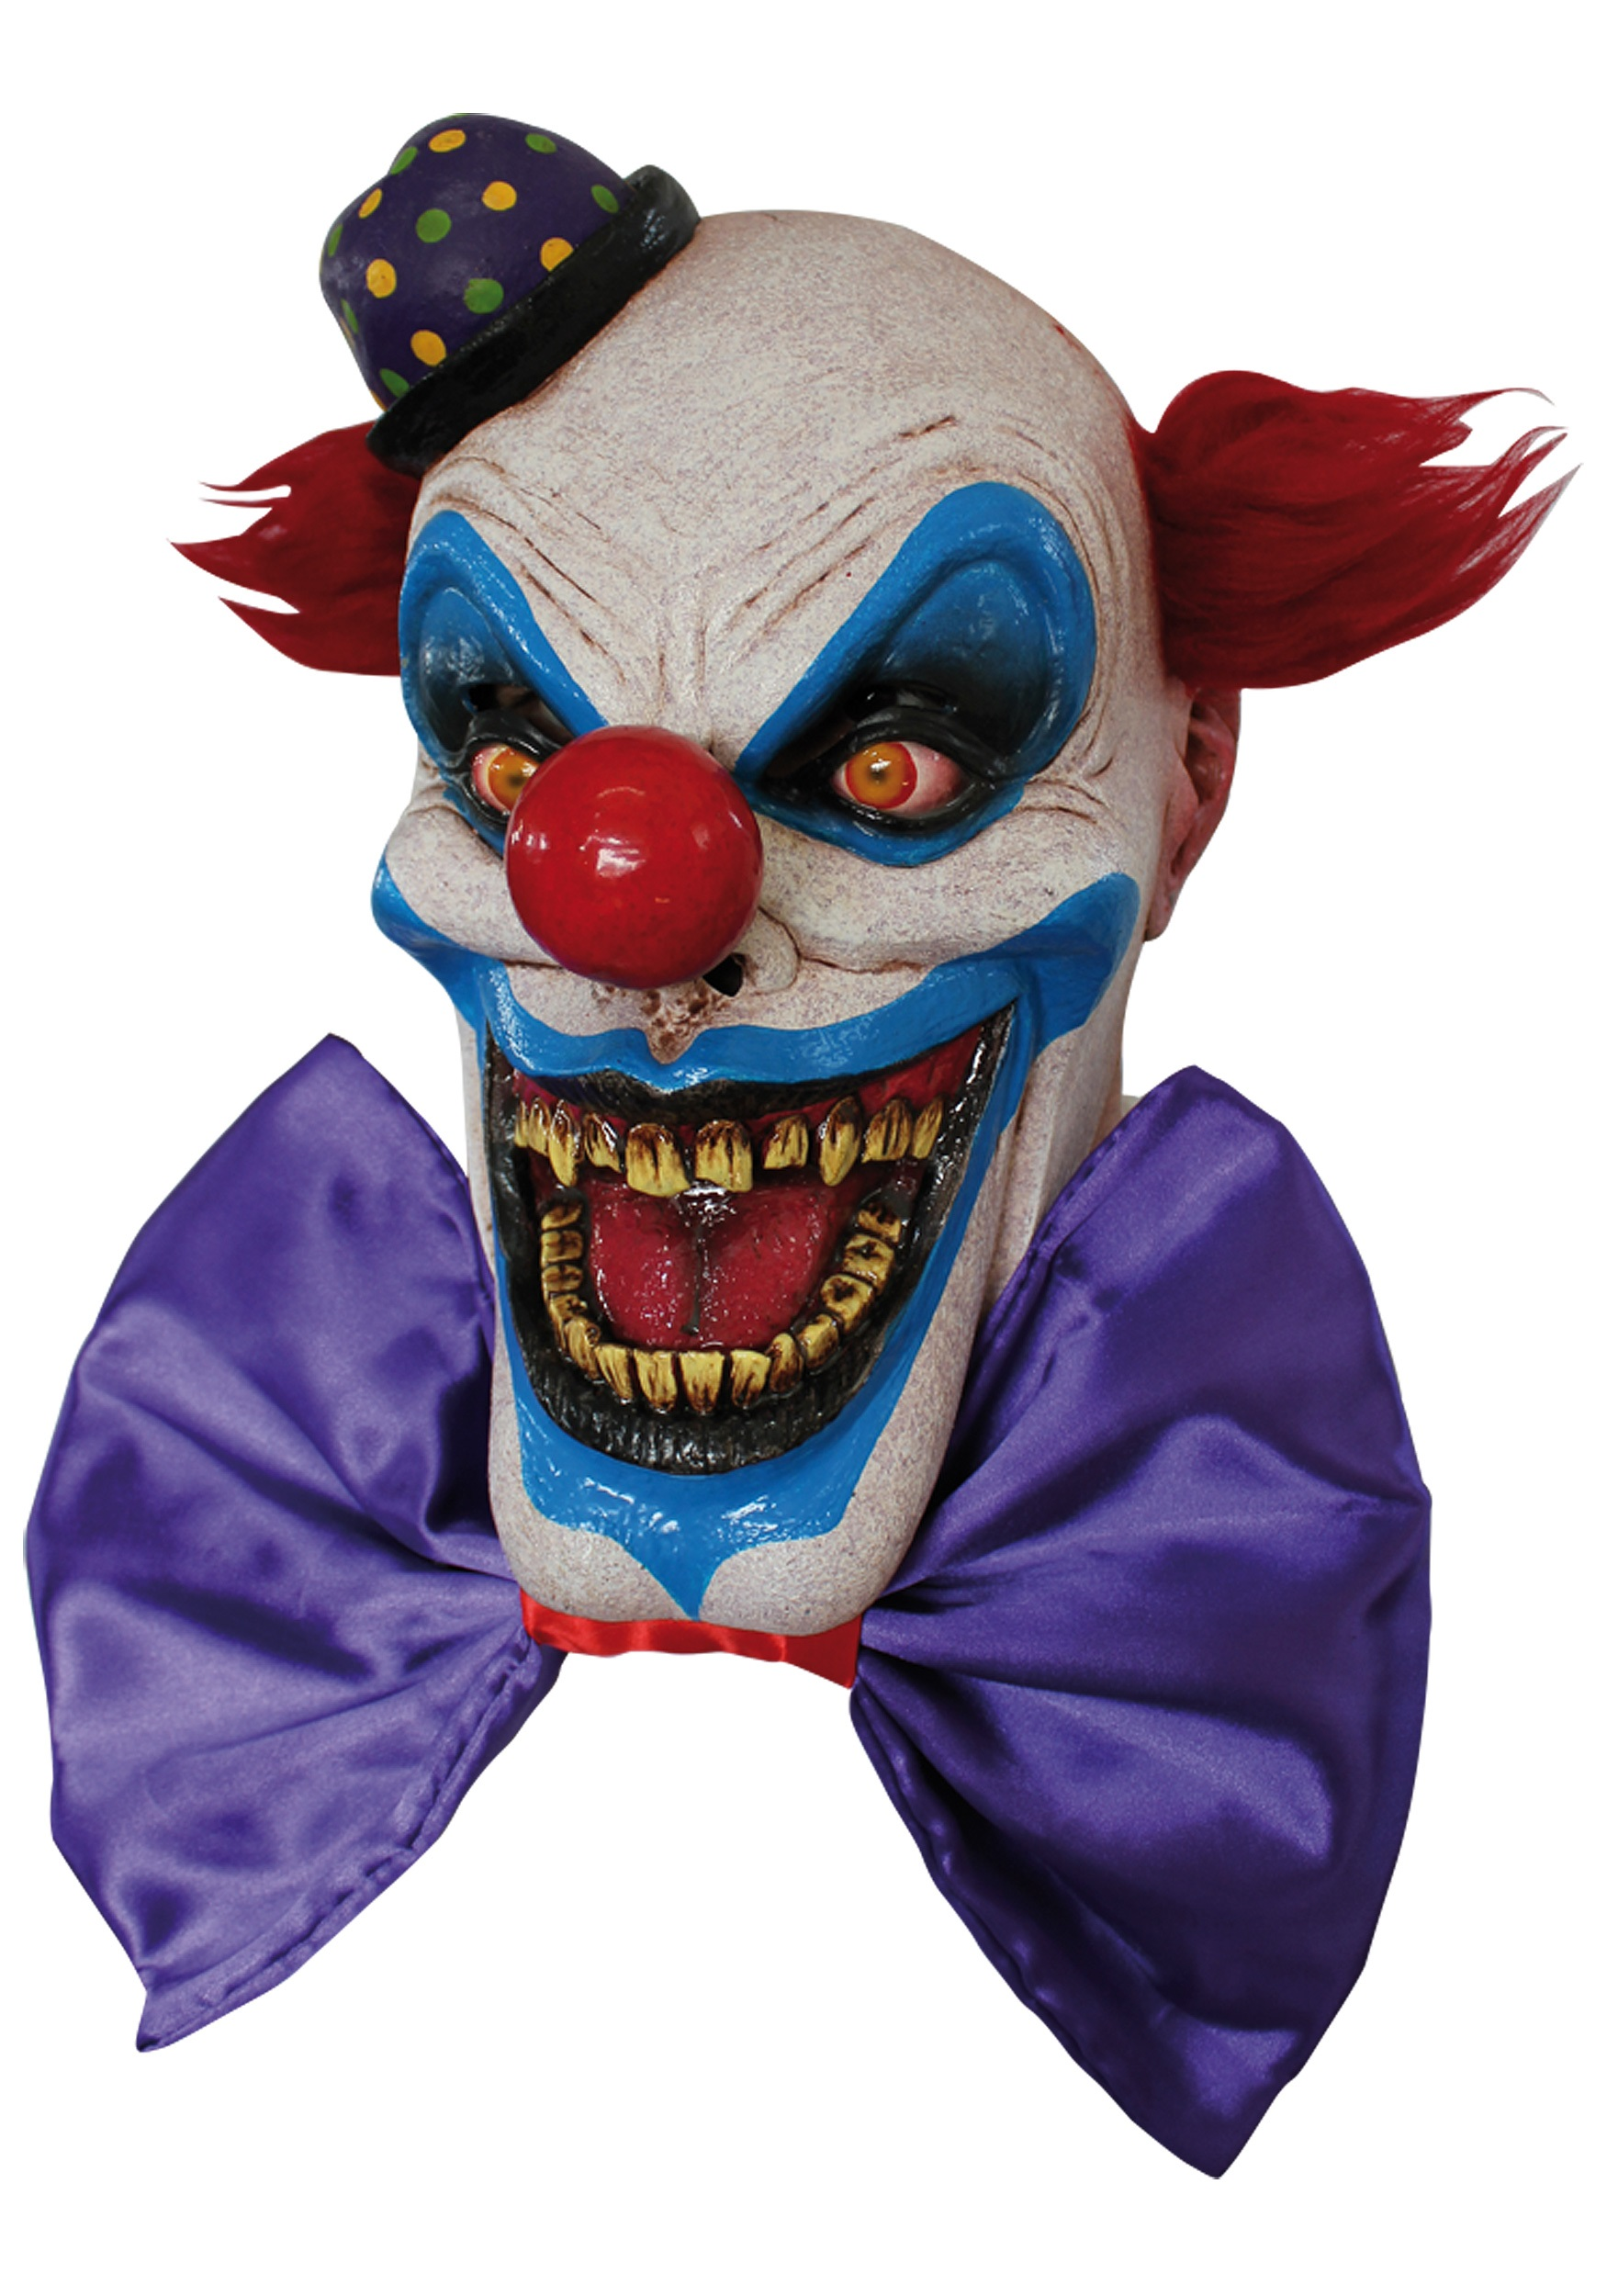 Fiendish Chompo the Clown Mask - Evil Clown Masks for Halloween